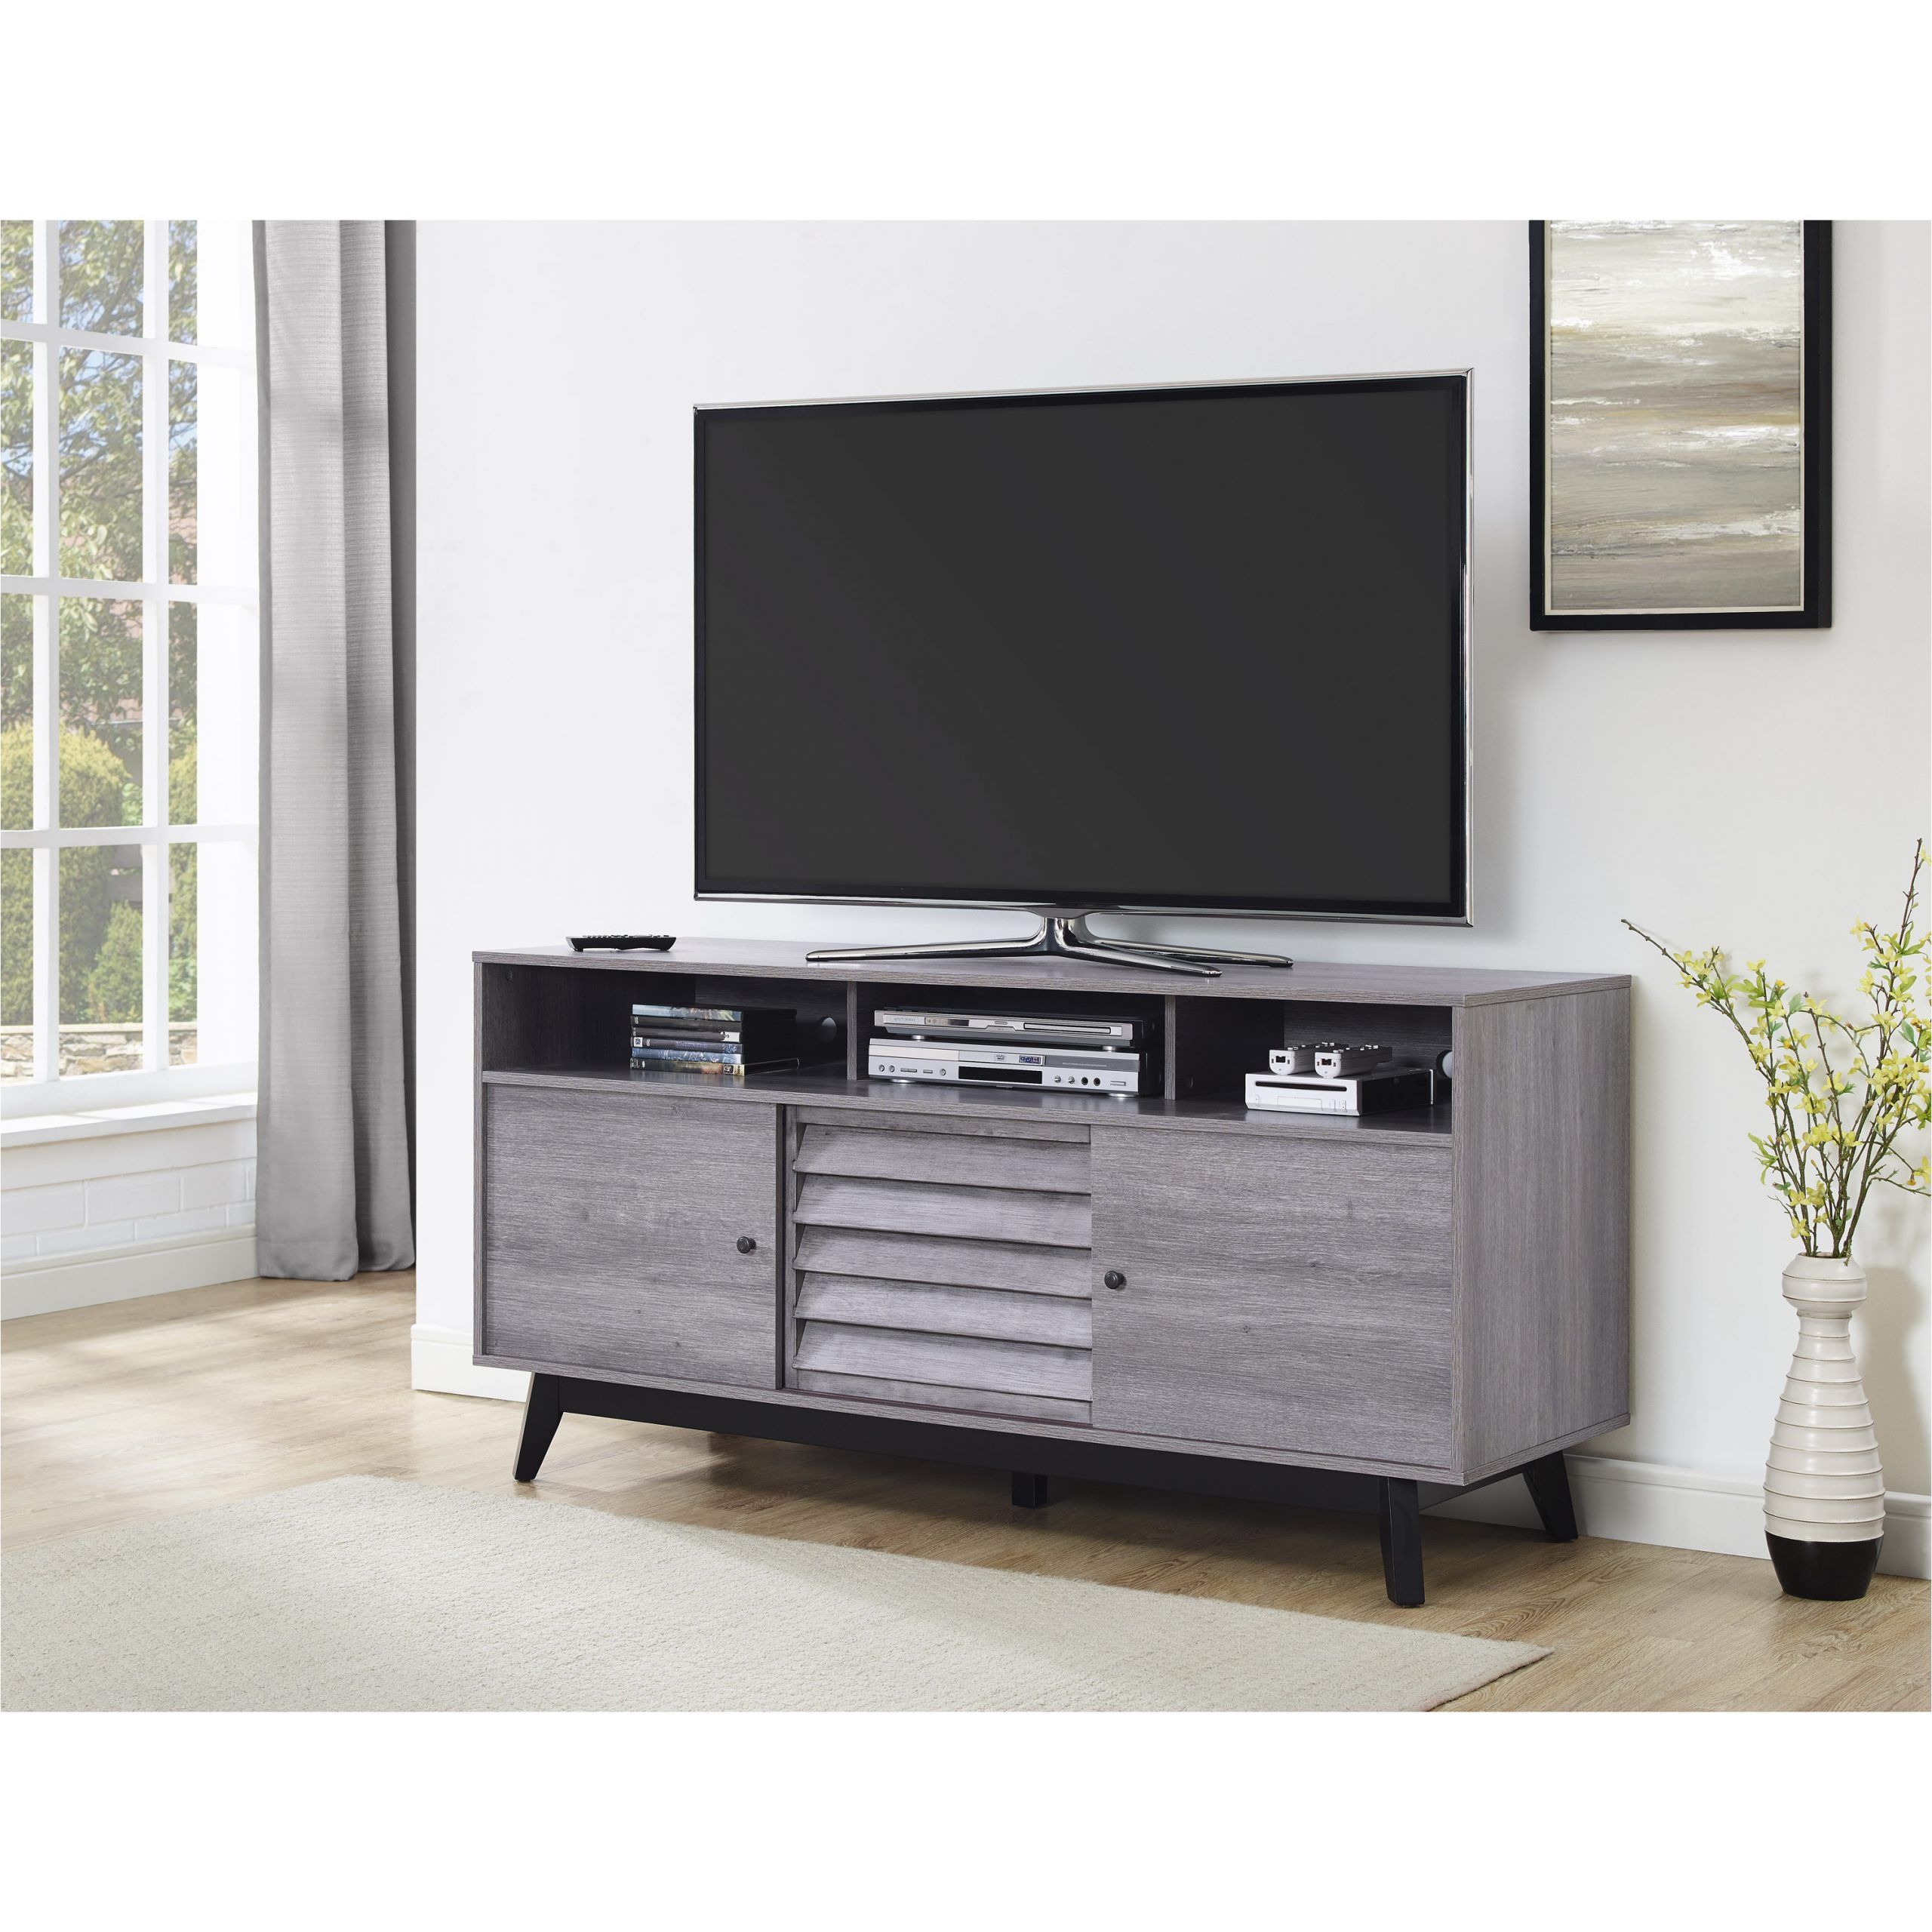 """Alannah Tv Stands For Tvs Up To 60"""" For Most Popular Dorel Home Products Dorel Vaughn Tv Stand (60"""") Grey Oak (View 8 of 20)"""